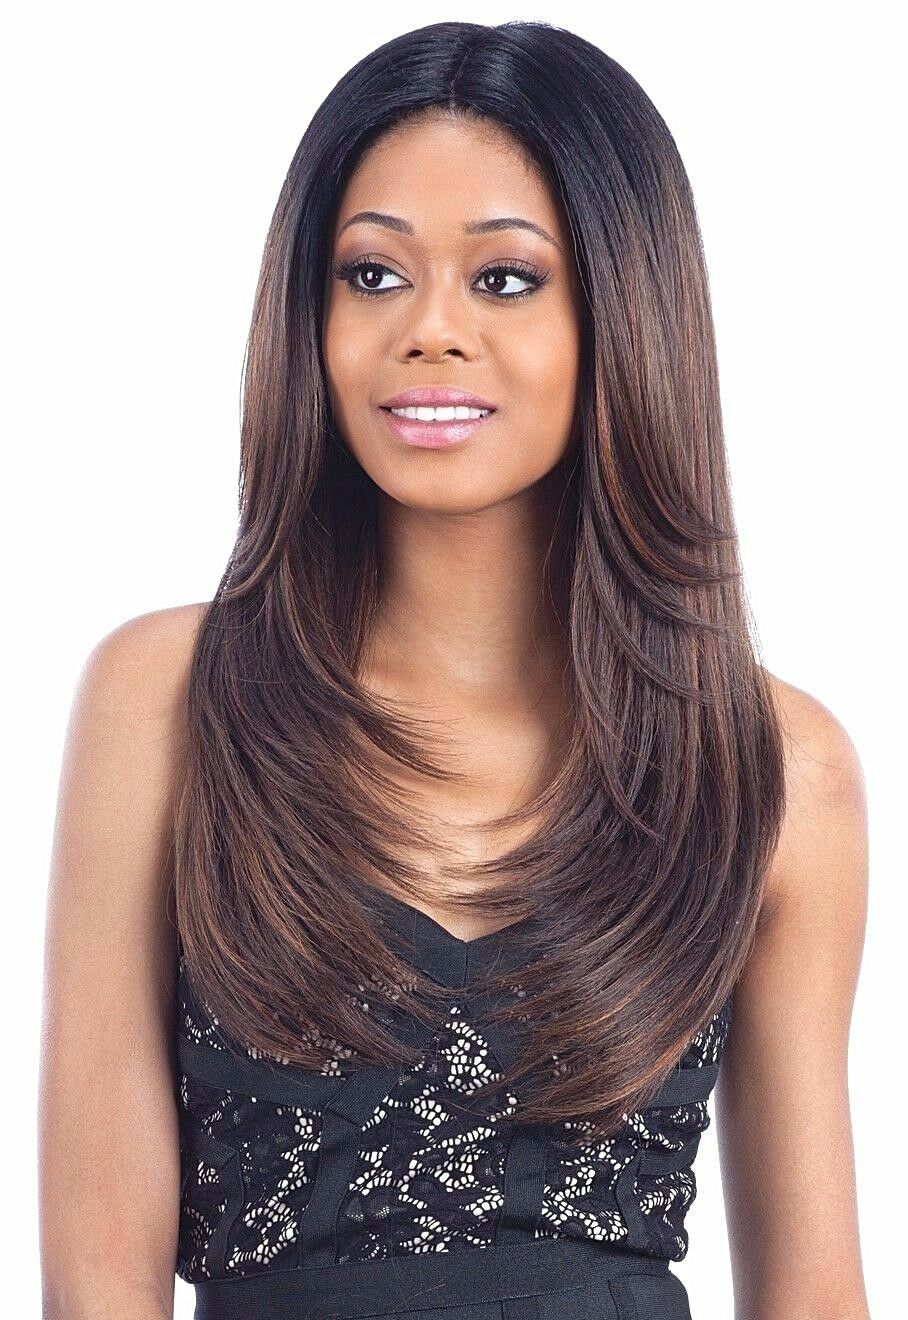 FREETRESS EQUAL 6 INCH LACE PART LONG STRAIGHT HAIR WIG MAC